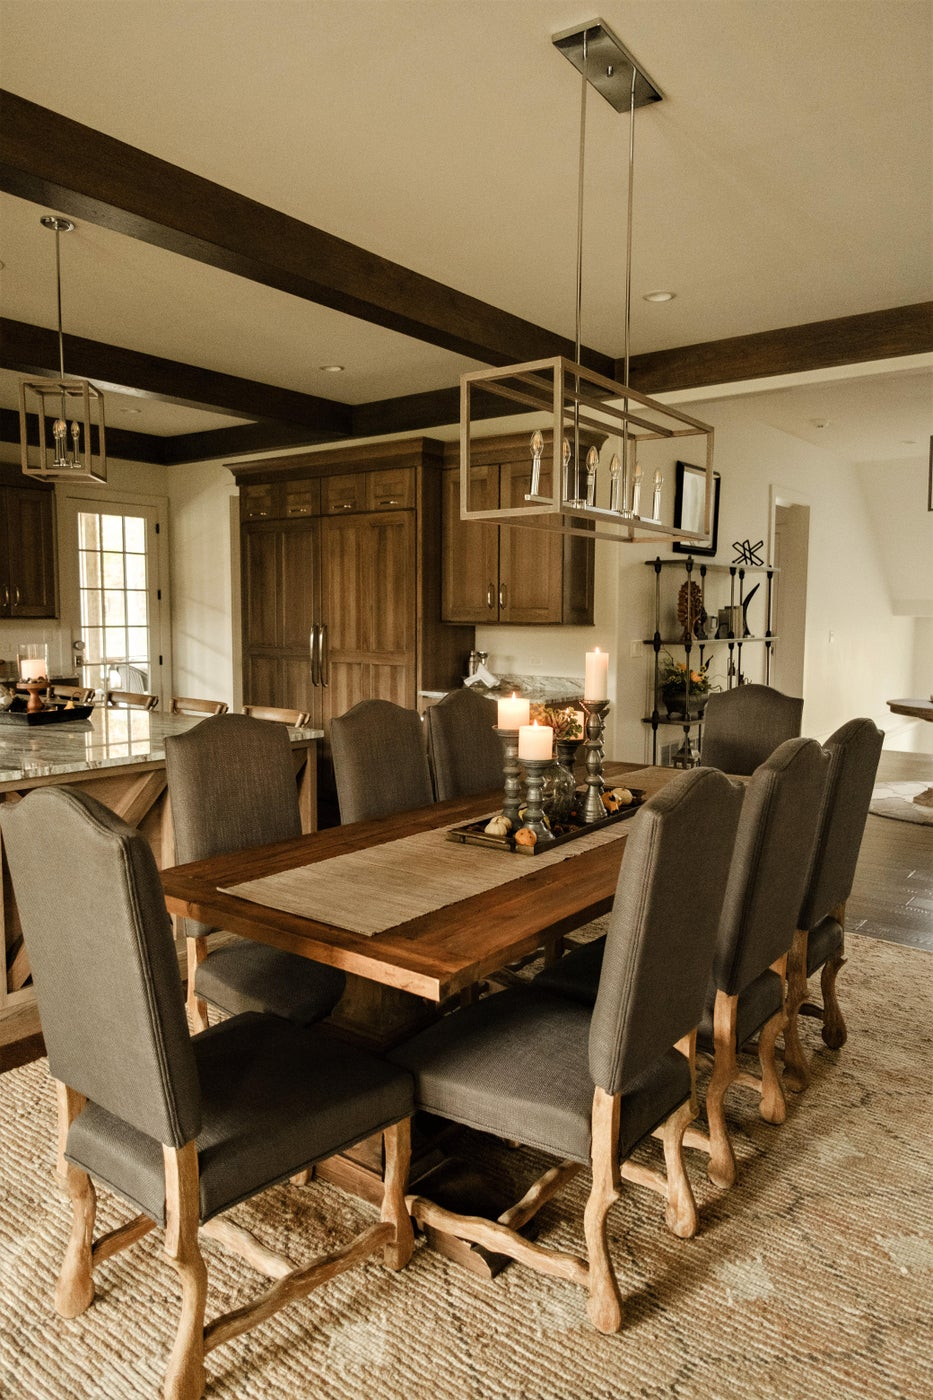 Weathered  dining chairs, rectangular pendant, dining table, rug, candles